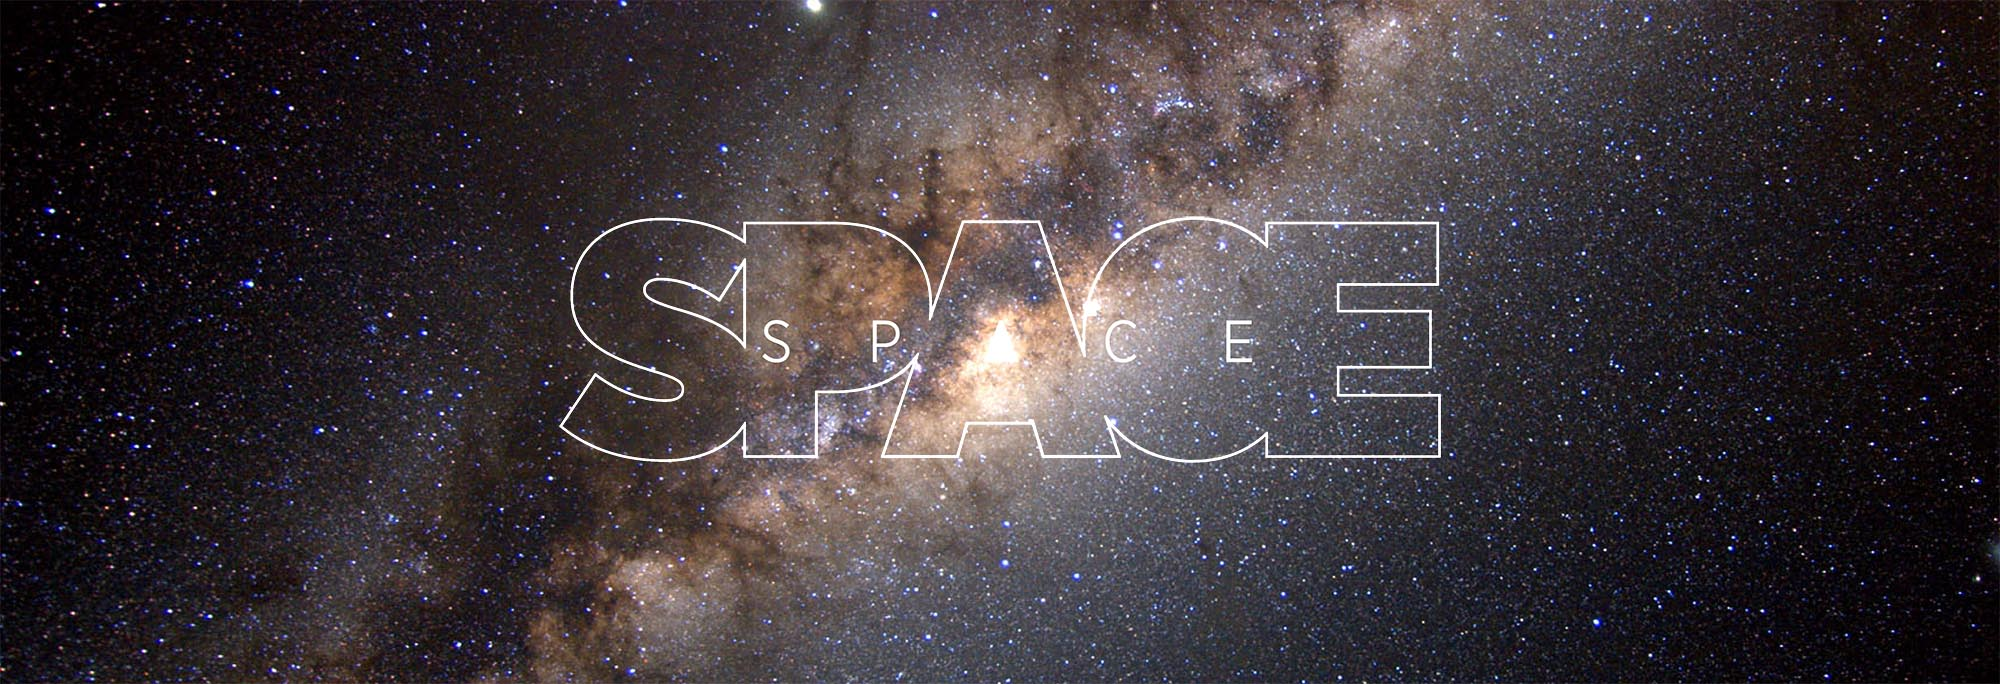 space in space